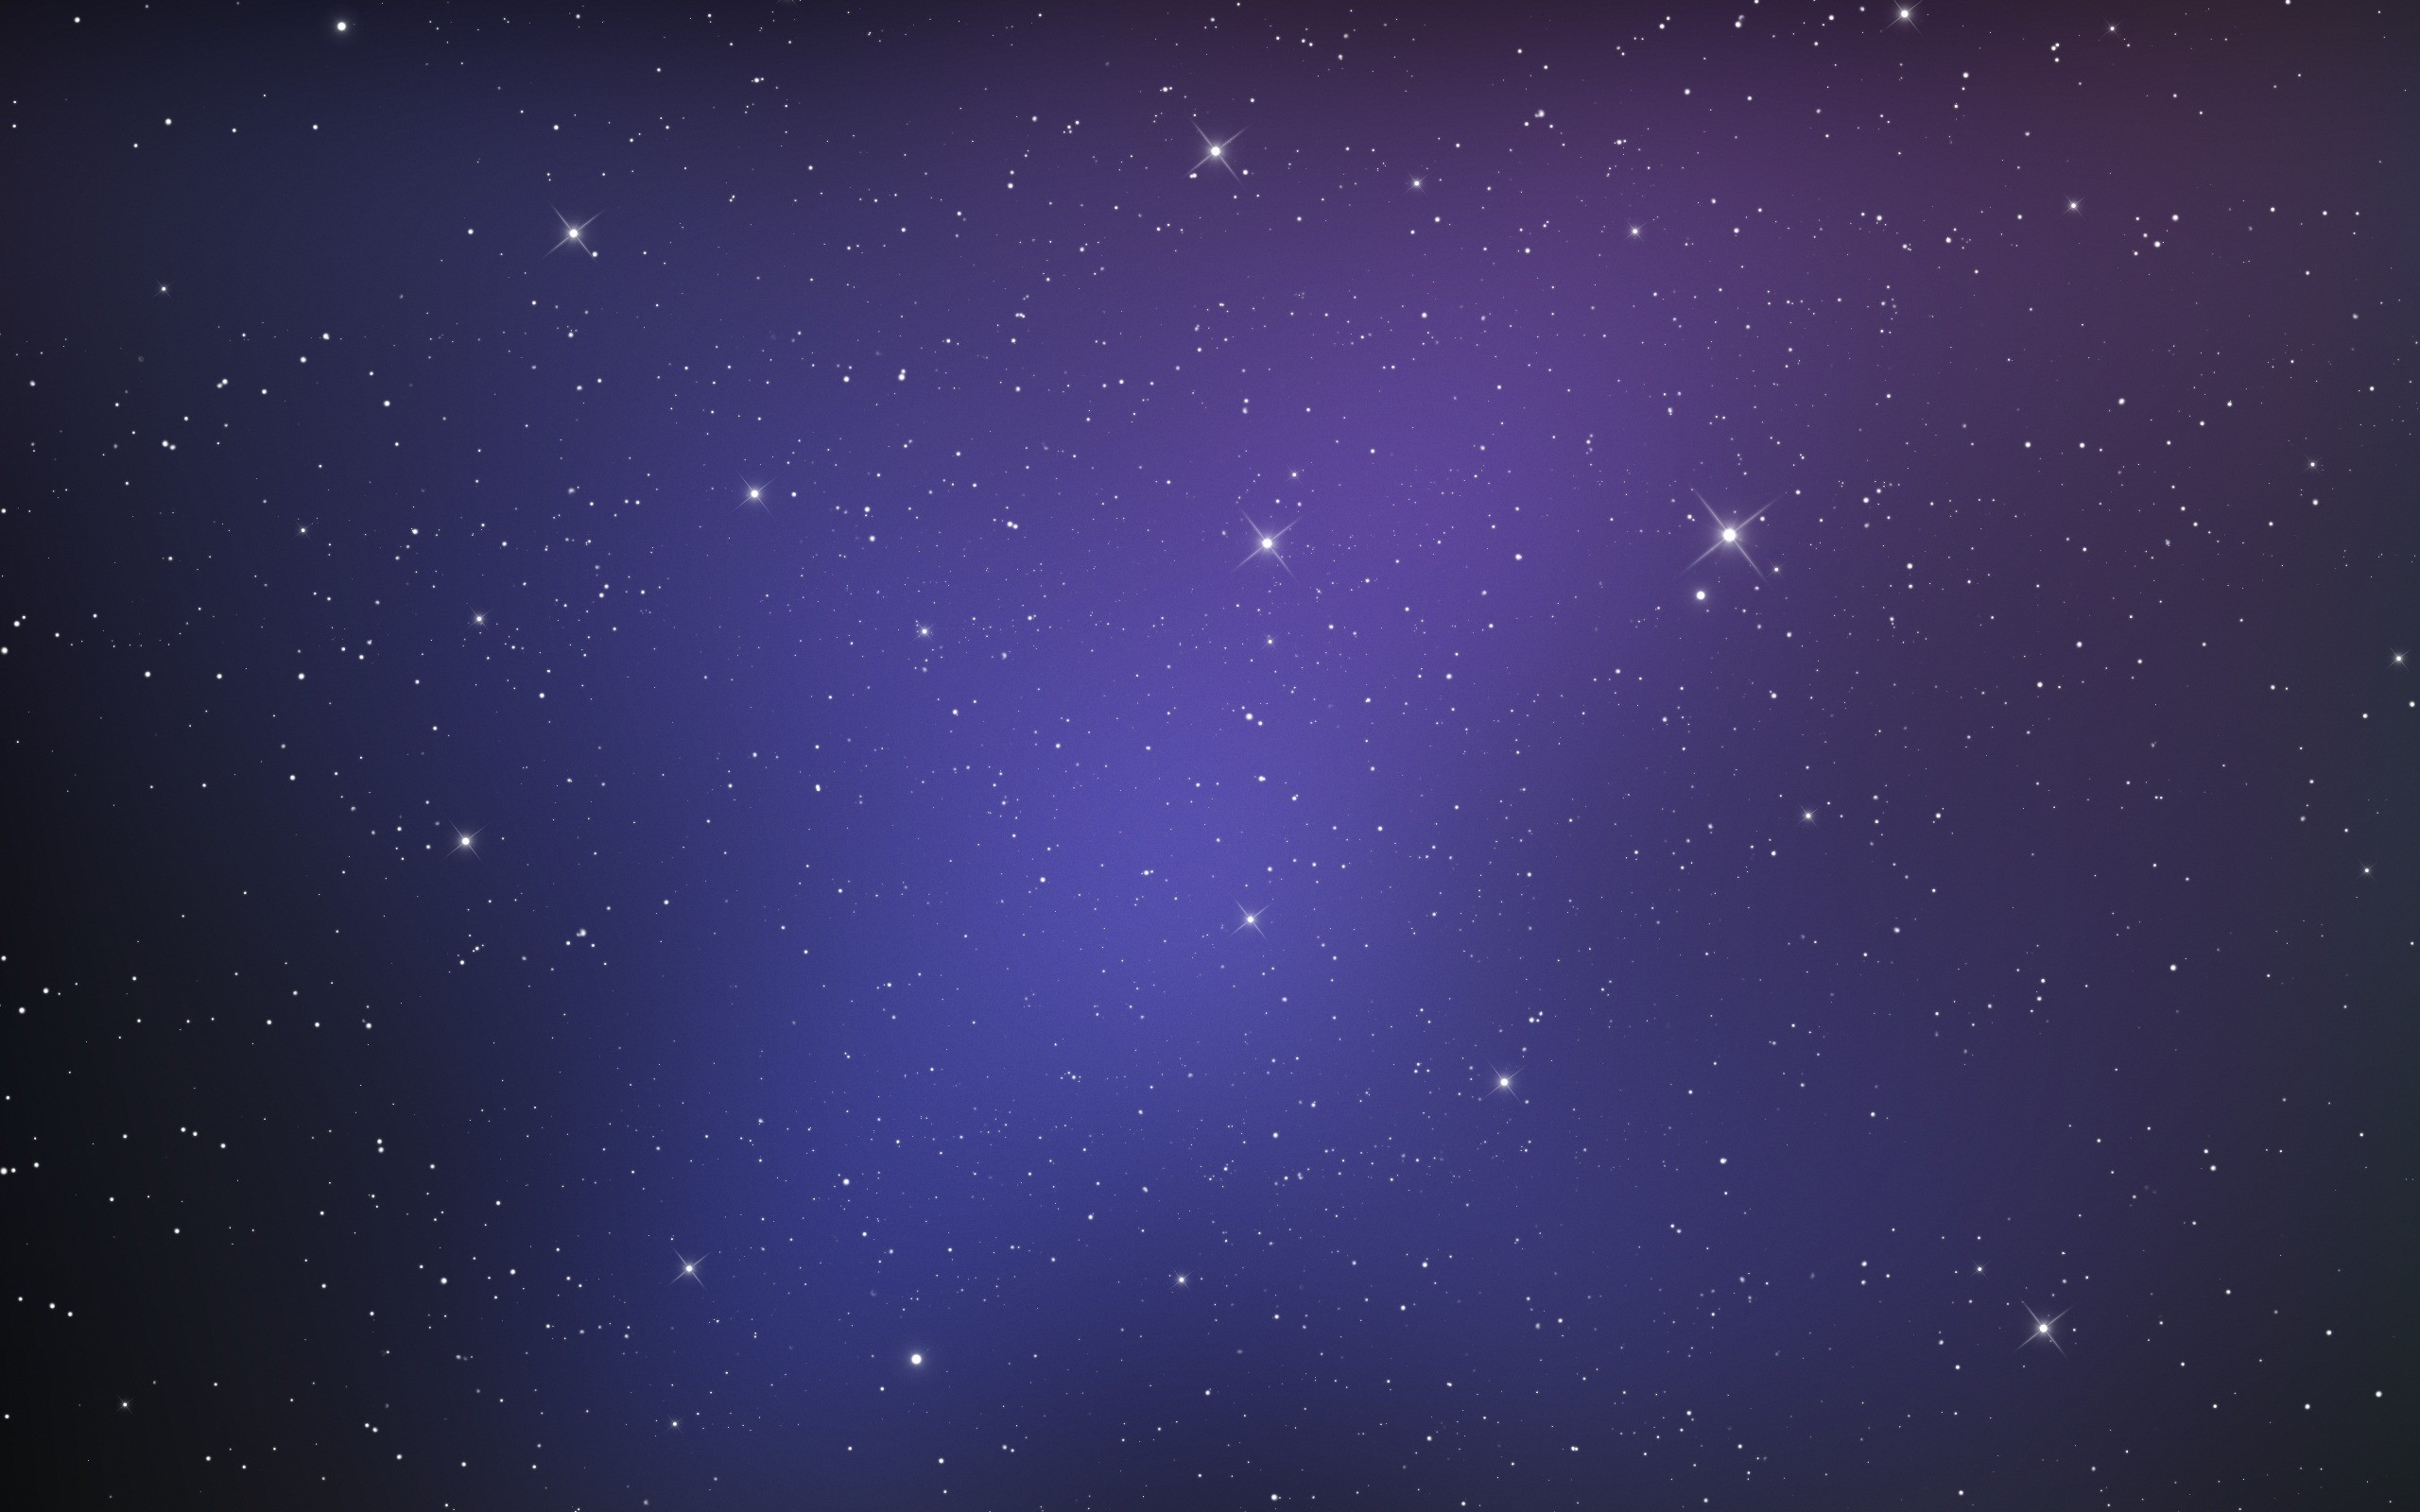 Preview Starry Night Wallpaper